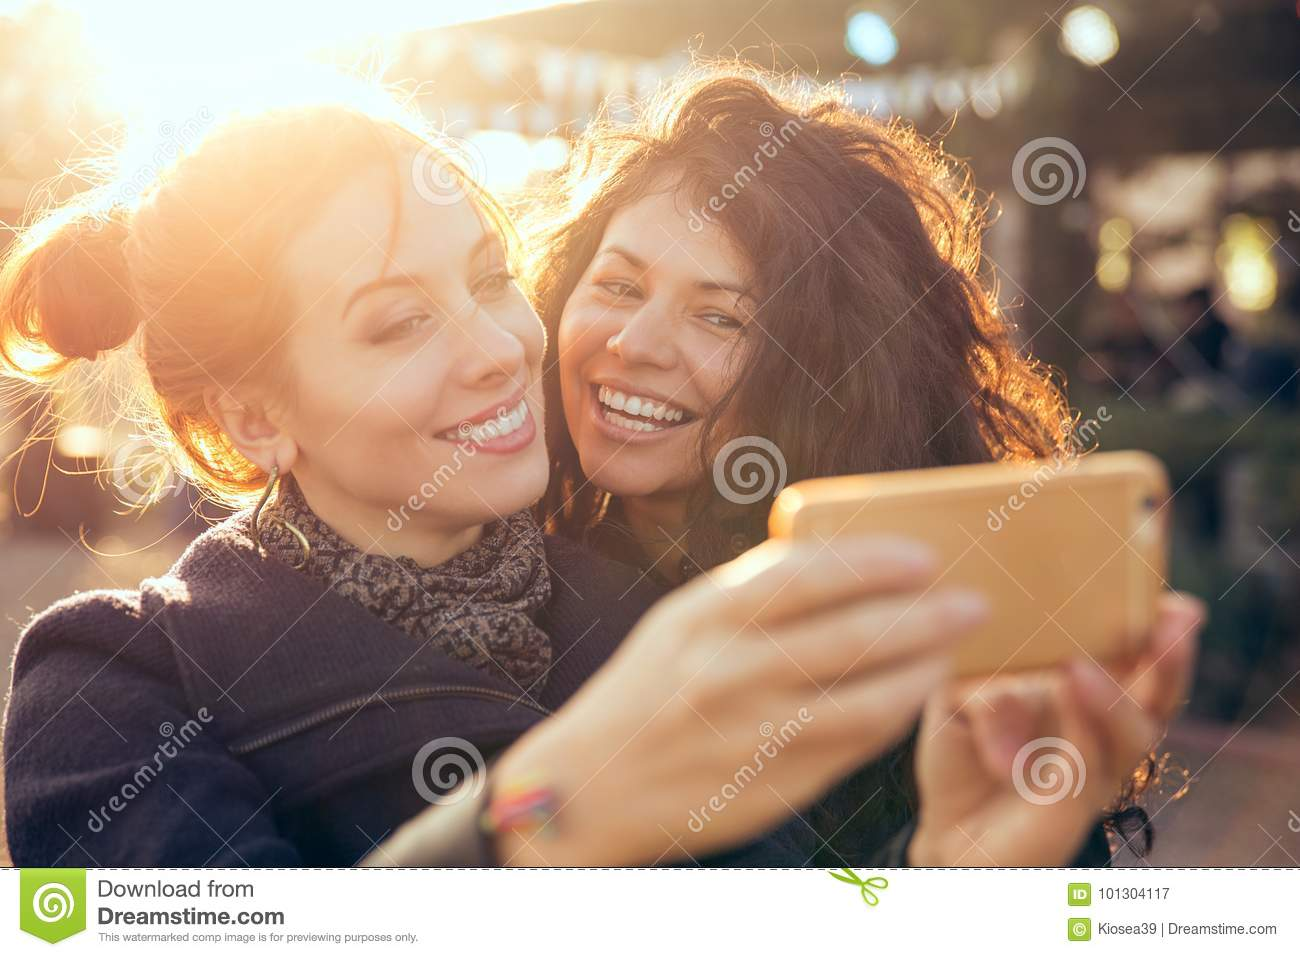 Female friends two women taking selfie during weekend getaway Outdoors